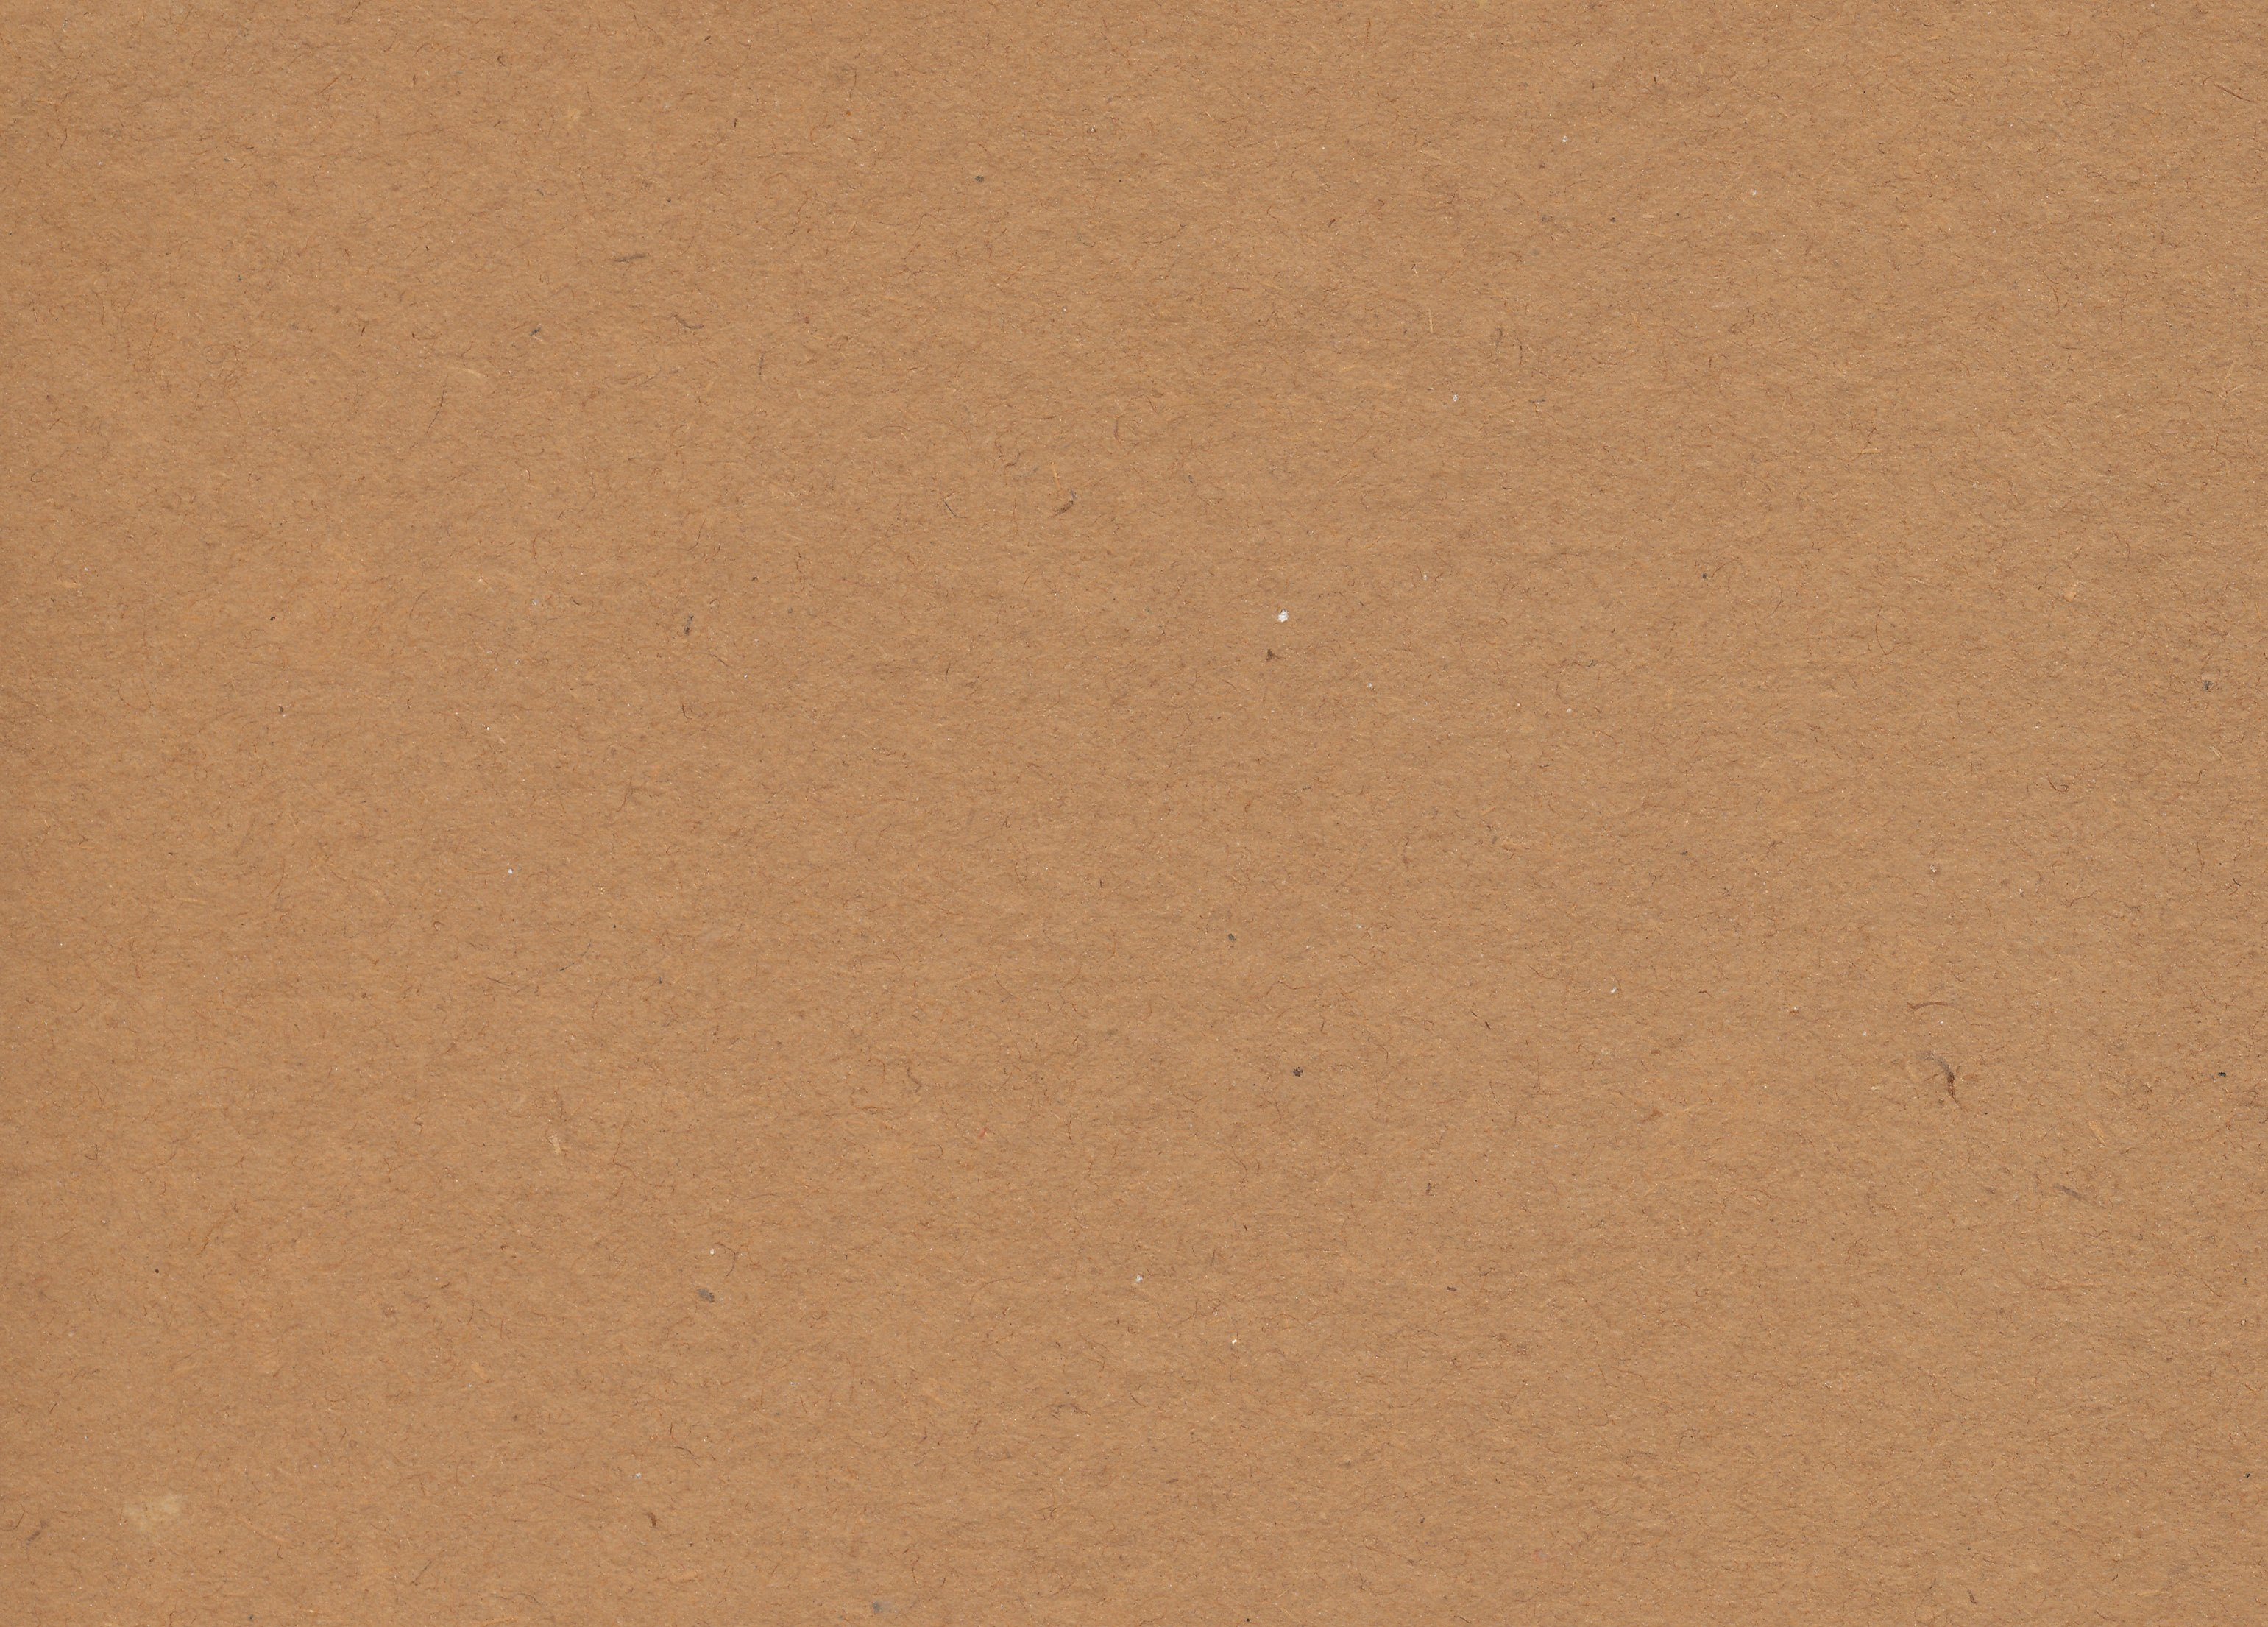 Cardboard paper texture | Textures for photoshop free